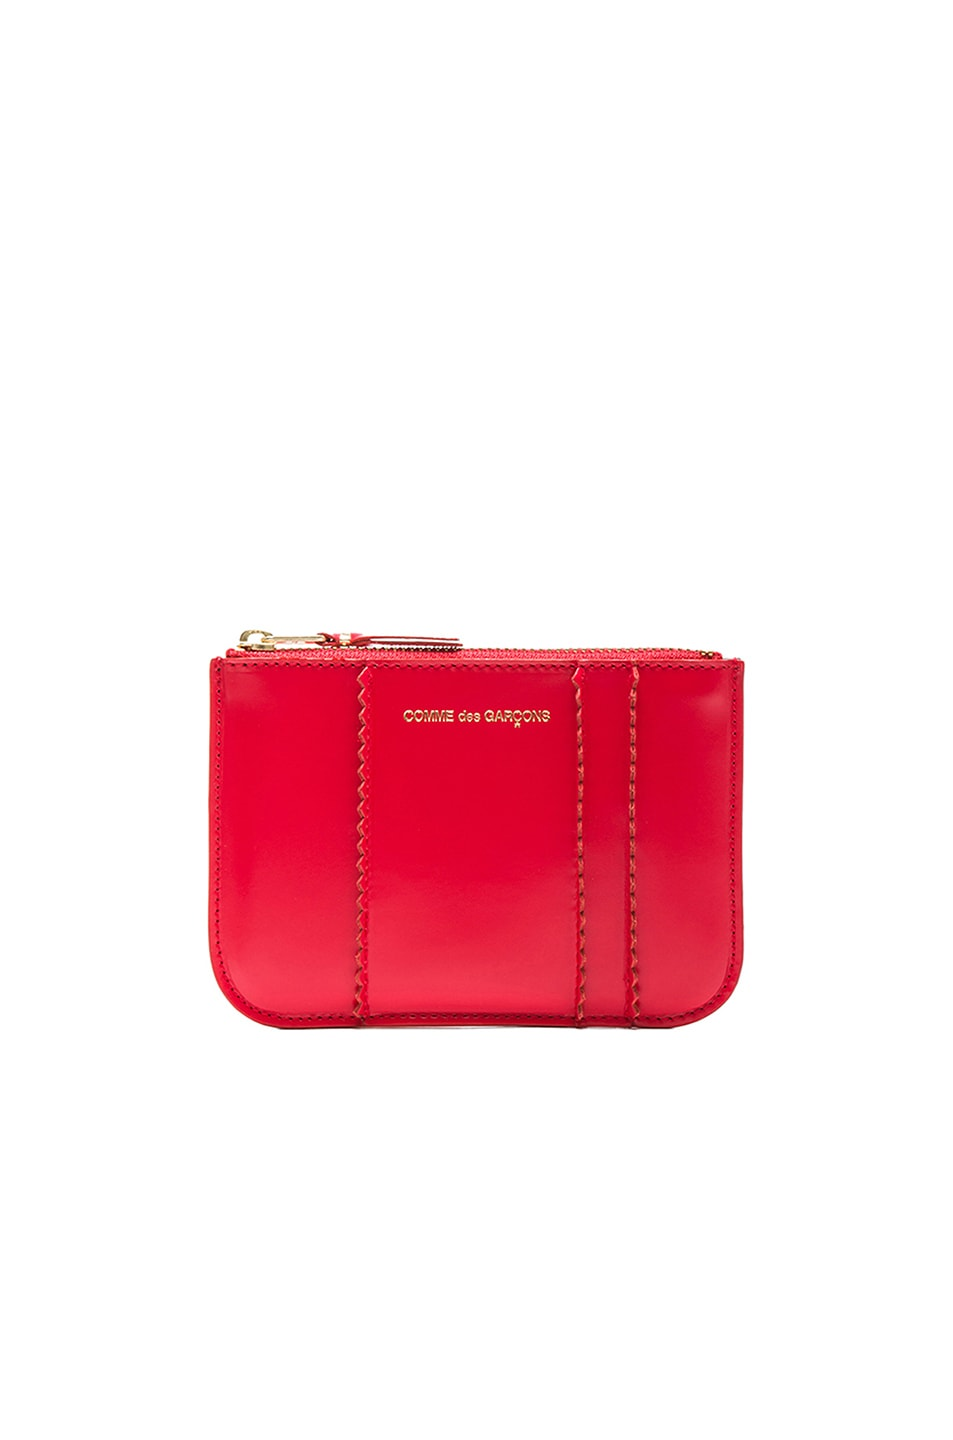 COMME DES GARCONS RAISED SPIKE SMALL POUCH IN RED